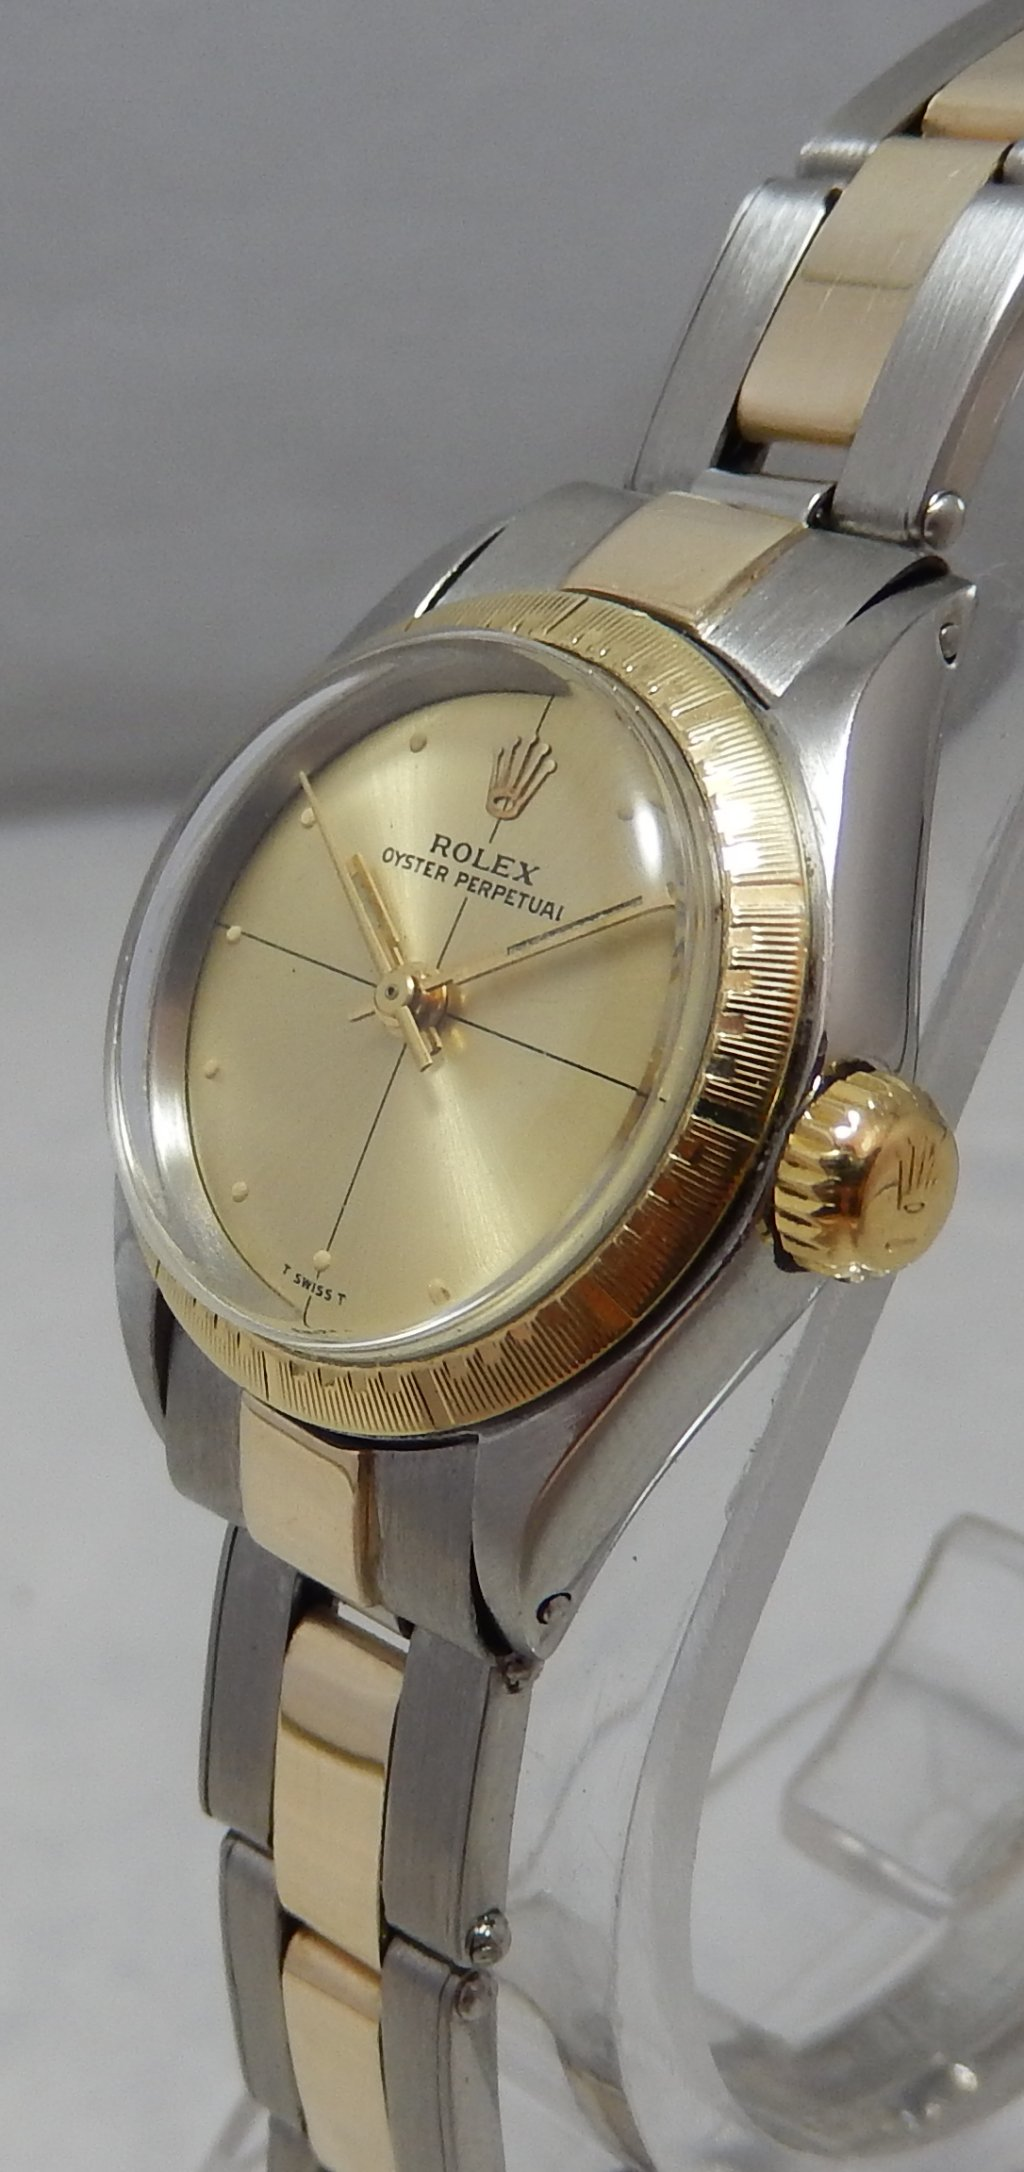 Details about Rolex Oyster Perpetual ZEPHYR Ladies 14k/ss Gold Watch Orig  Band \u0026 Dial 1971